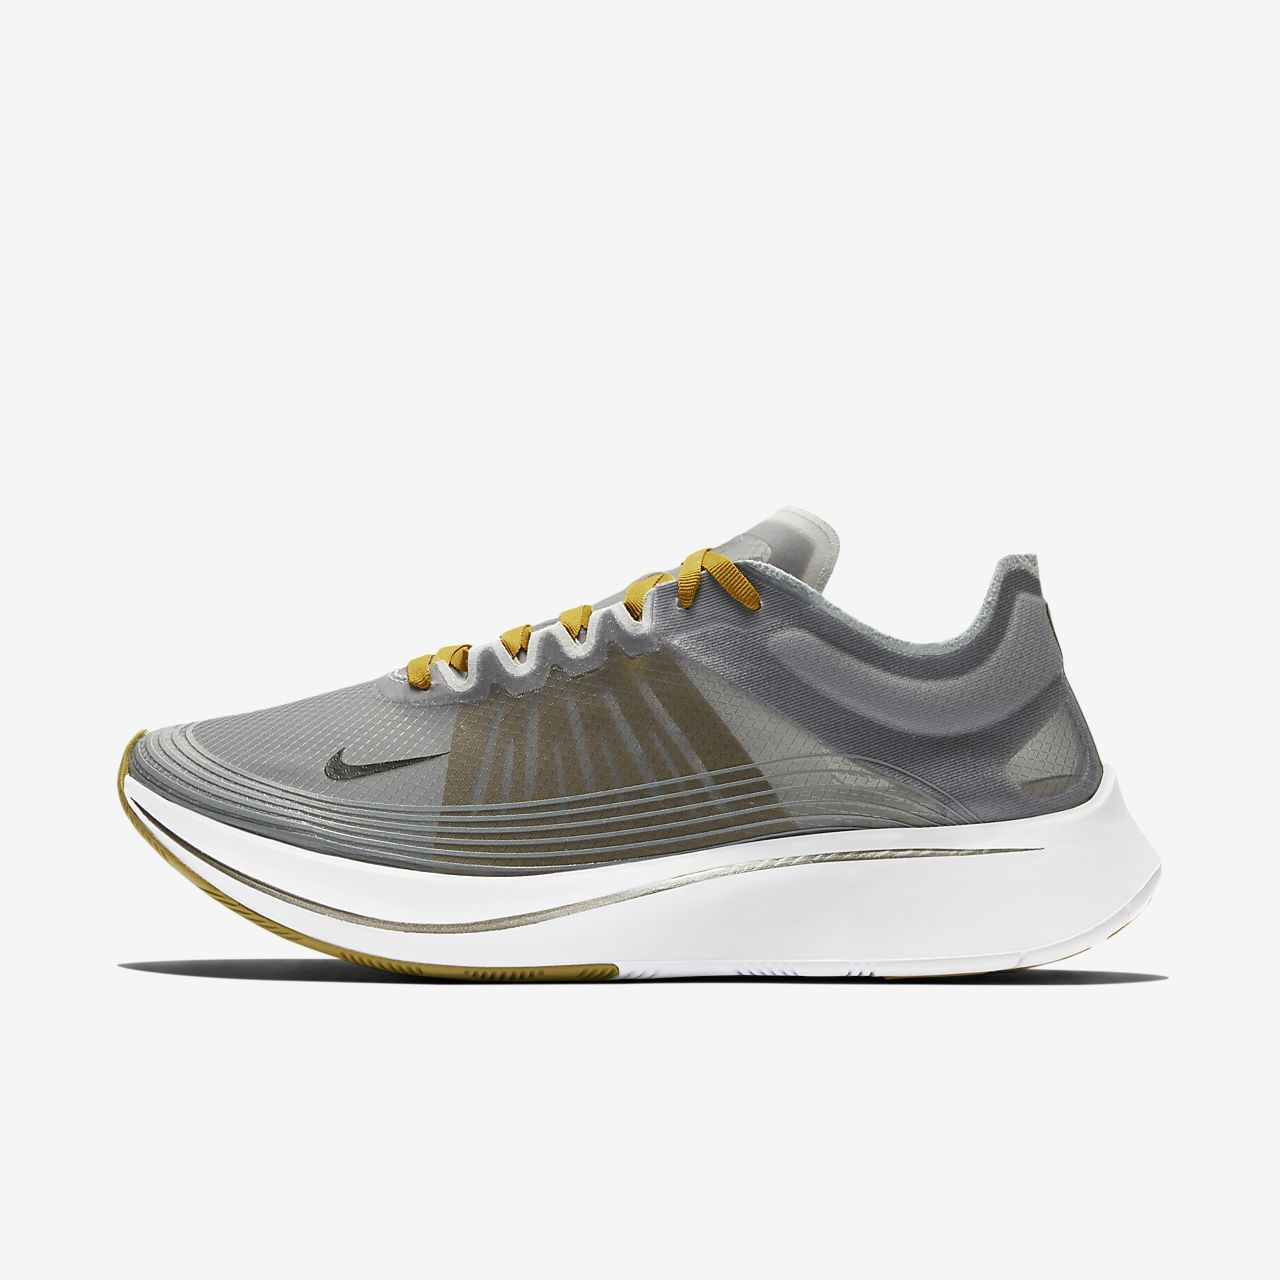 separation shoes 91d31 3cfc4 ... Nike Zoom Fly SP Running Shoe